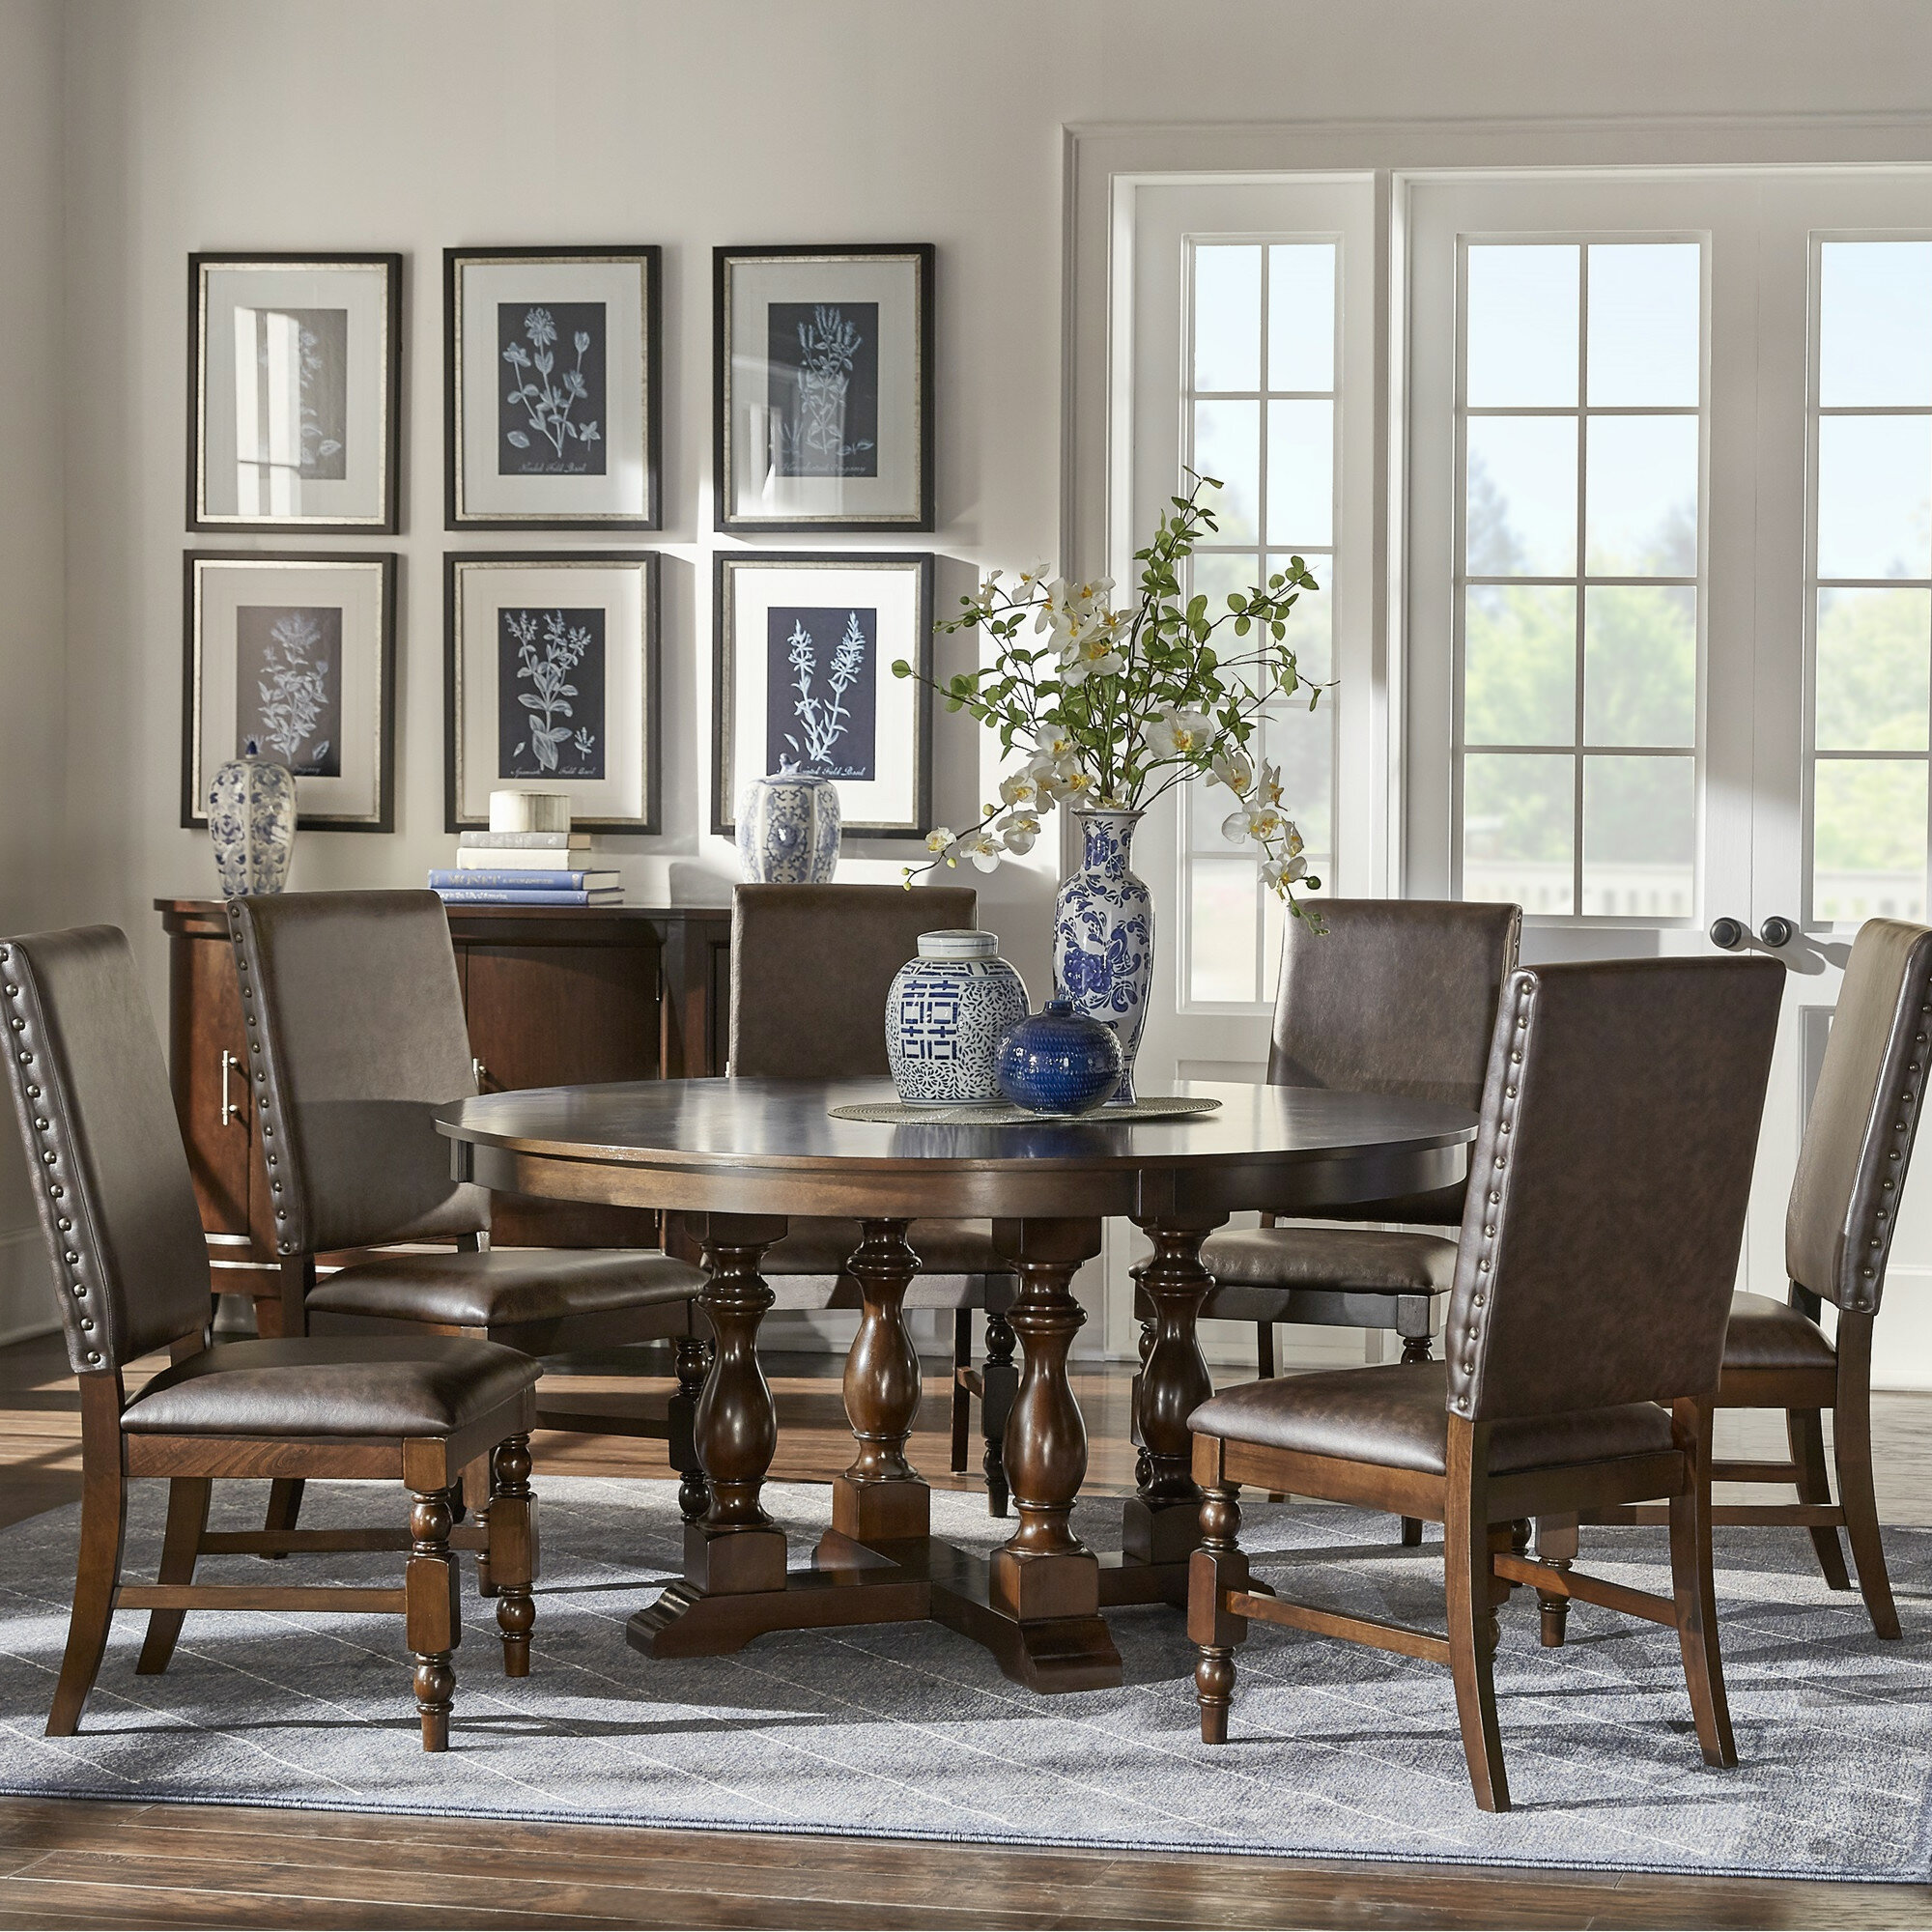 Darby Home Co Kingsley 7 Piece Dining